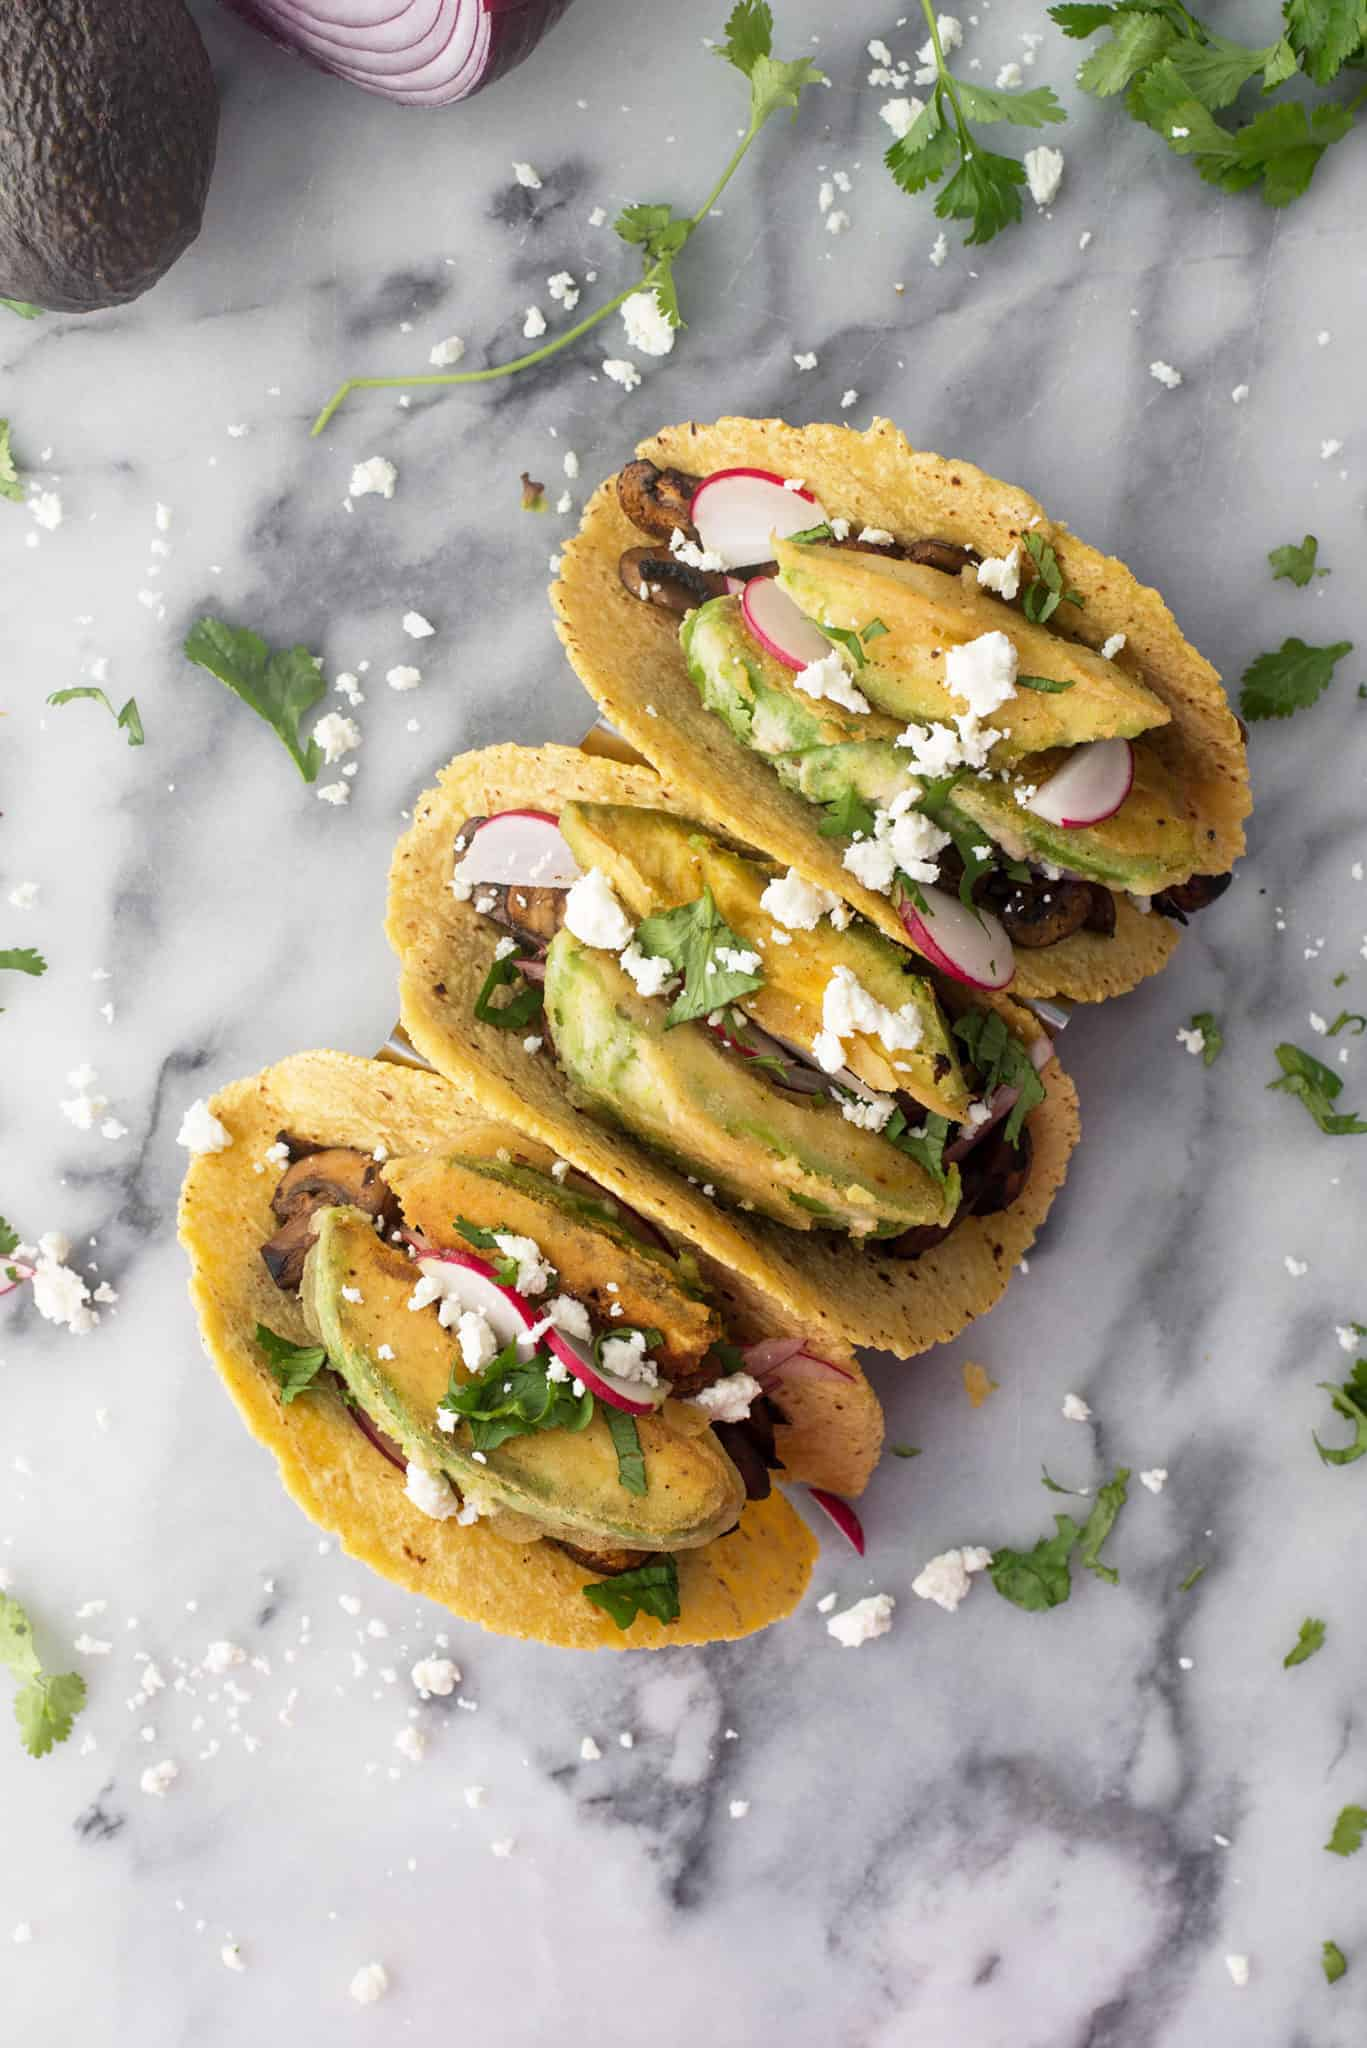 Spicy Mushroom and Black Bean Tacos with Crispy Avocado. These vegetarian tacos are loaded with flavor and texture! Crispy fried avocado, pickled onions, spicy mushroom and bean filling and goat cheese. | www.delishknowledge.com